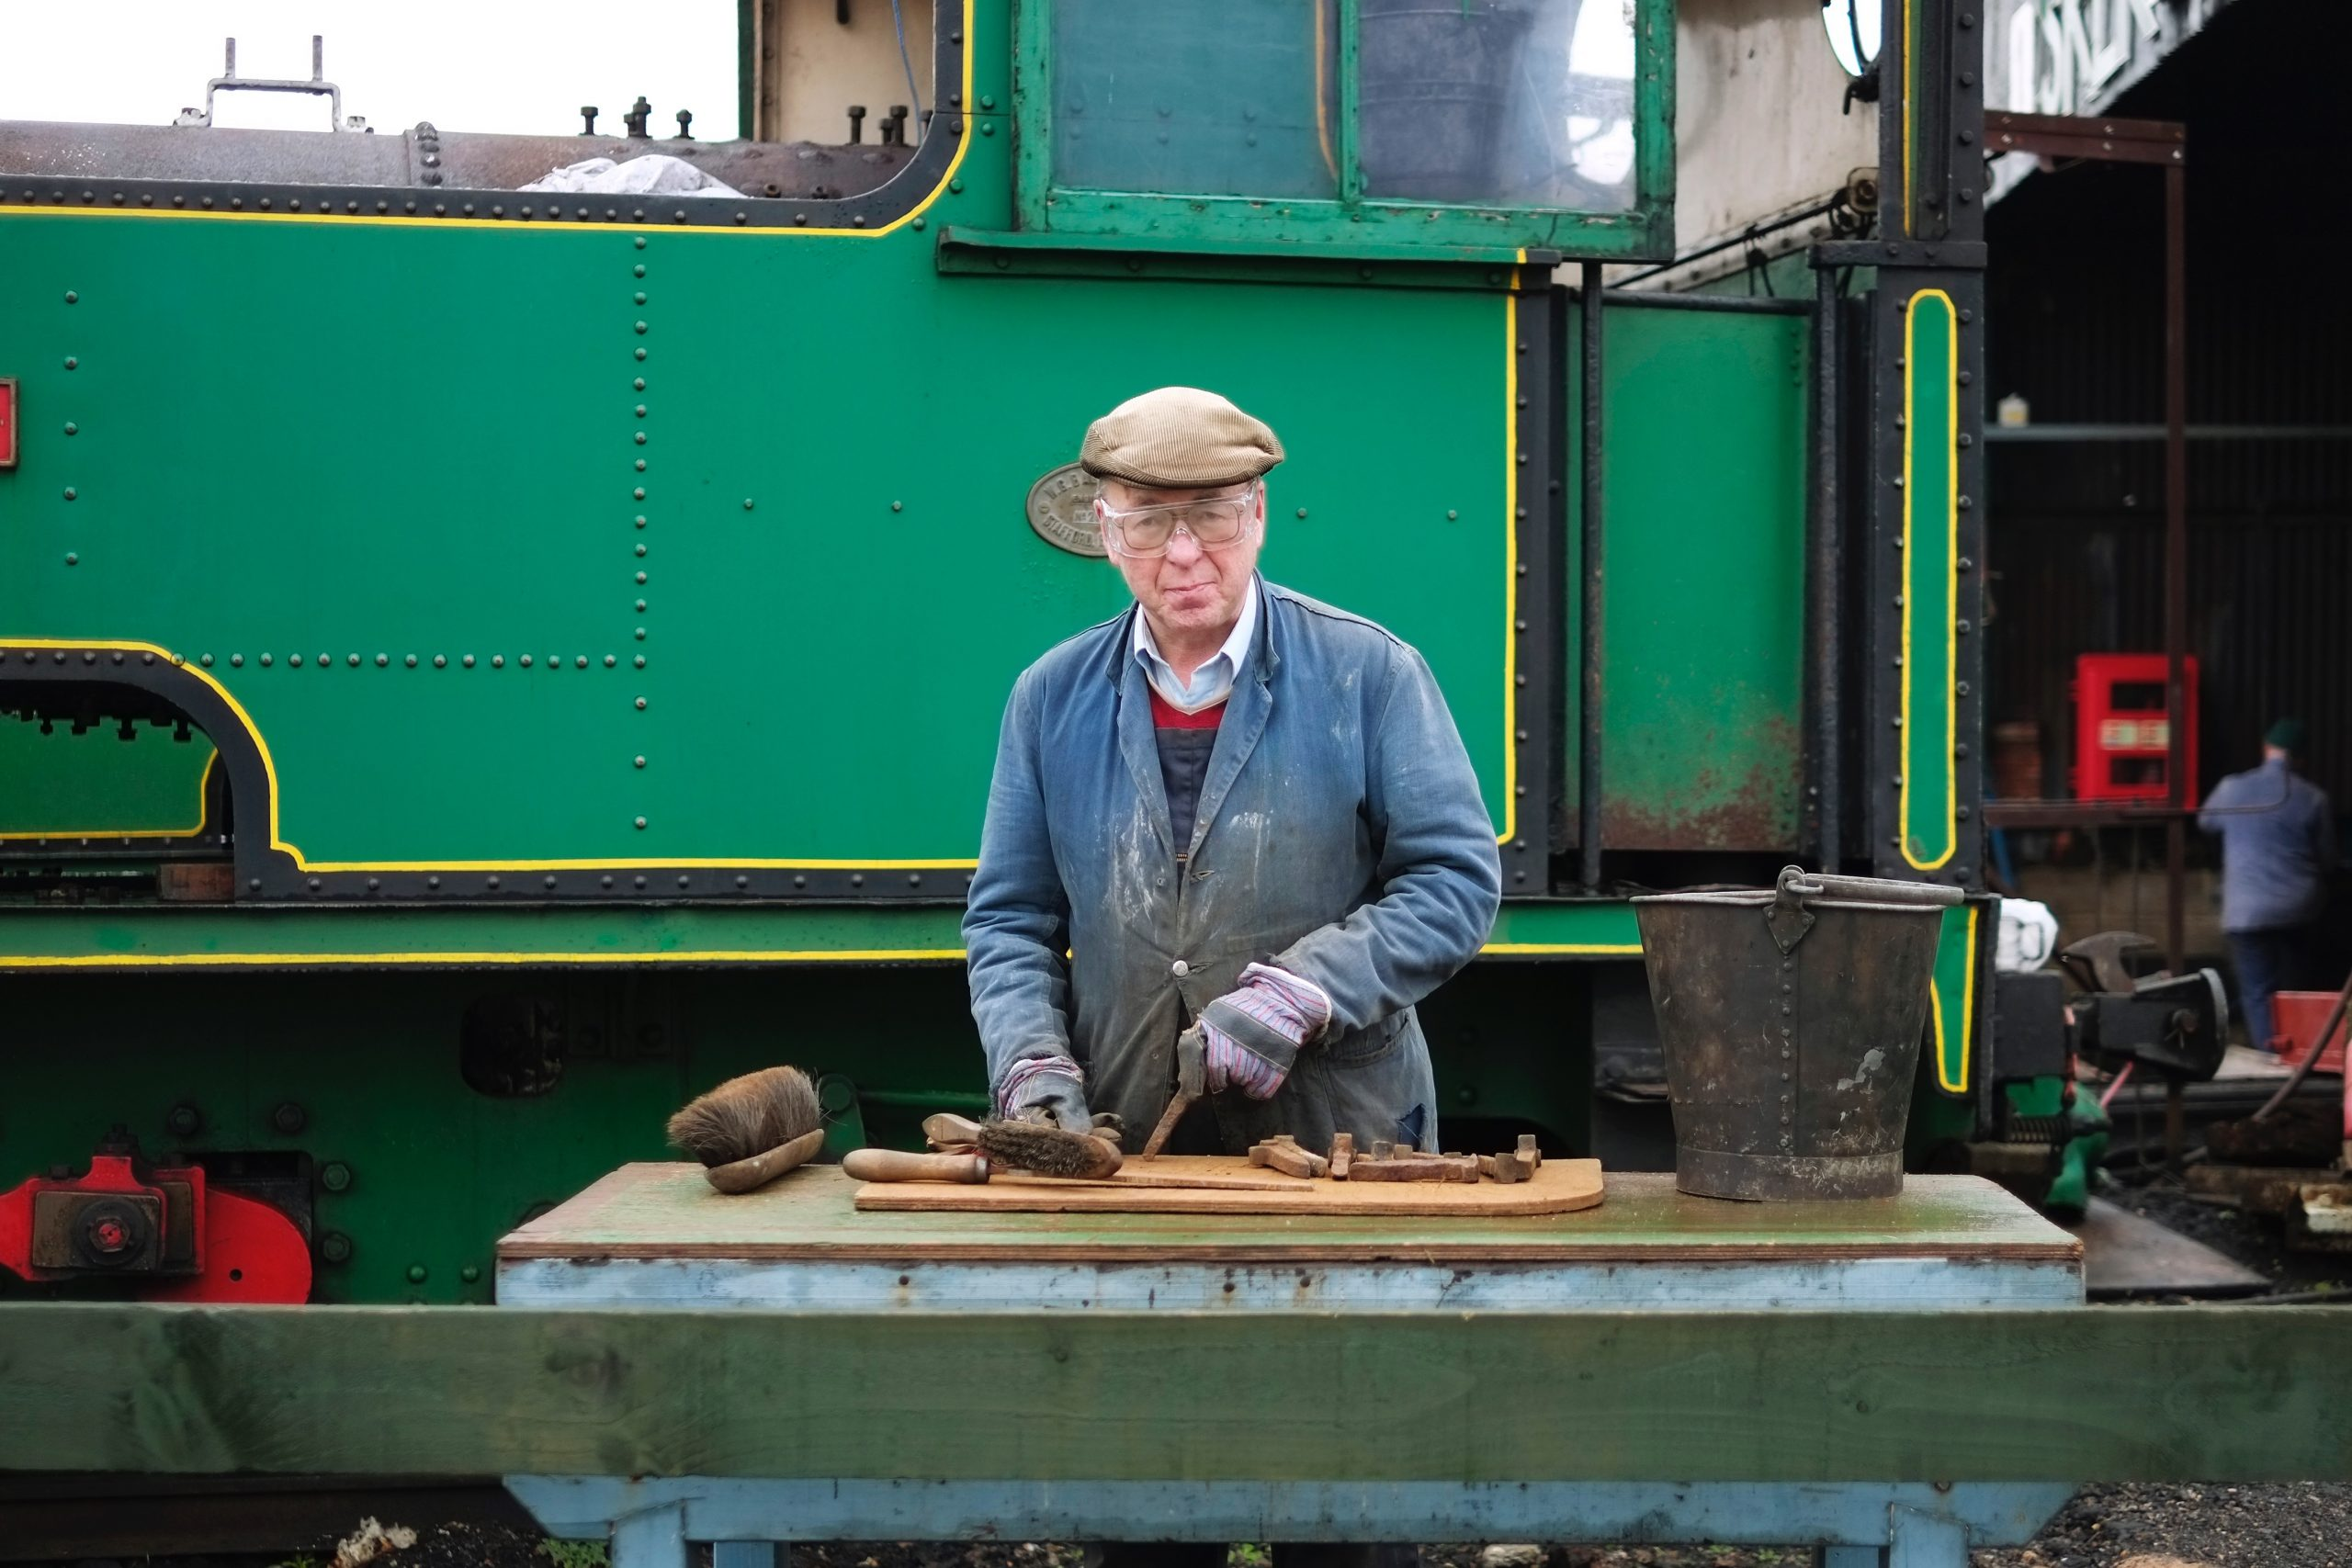 train enthusiast mending parts looking straight to camera